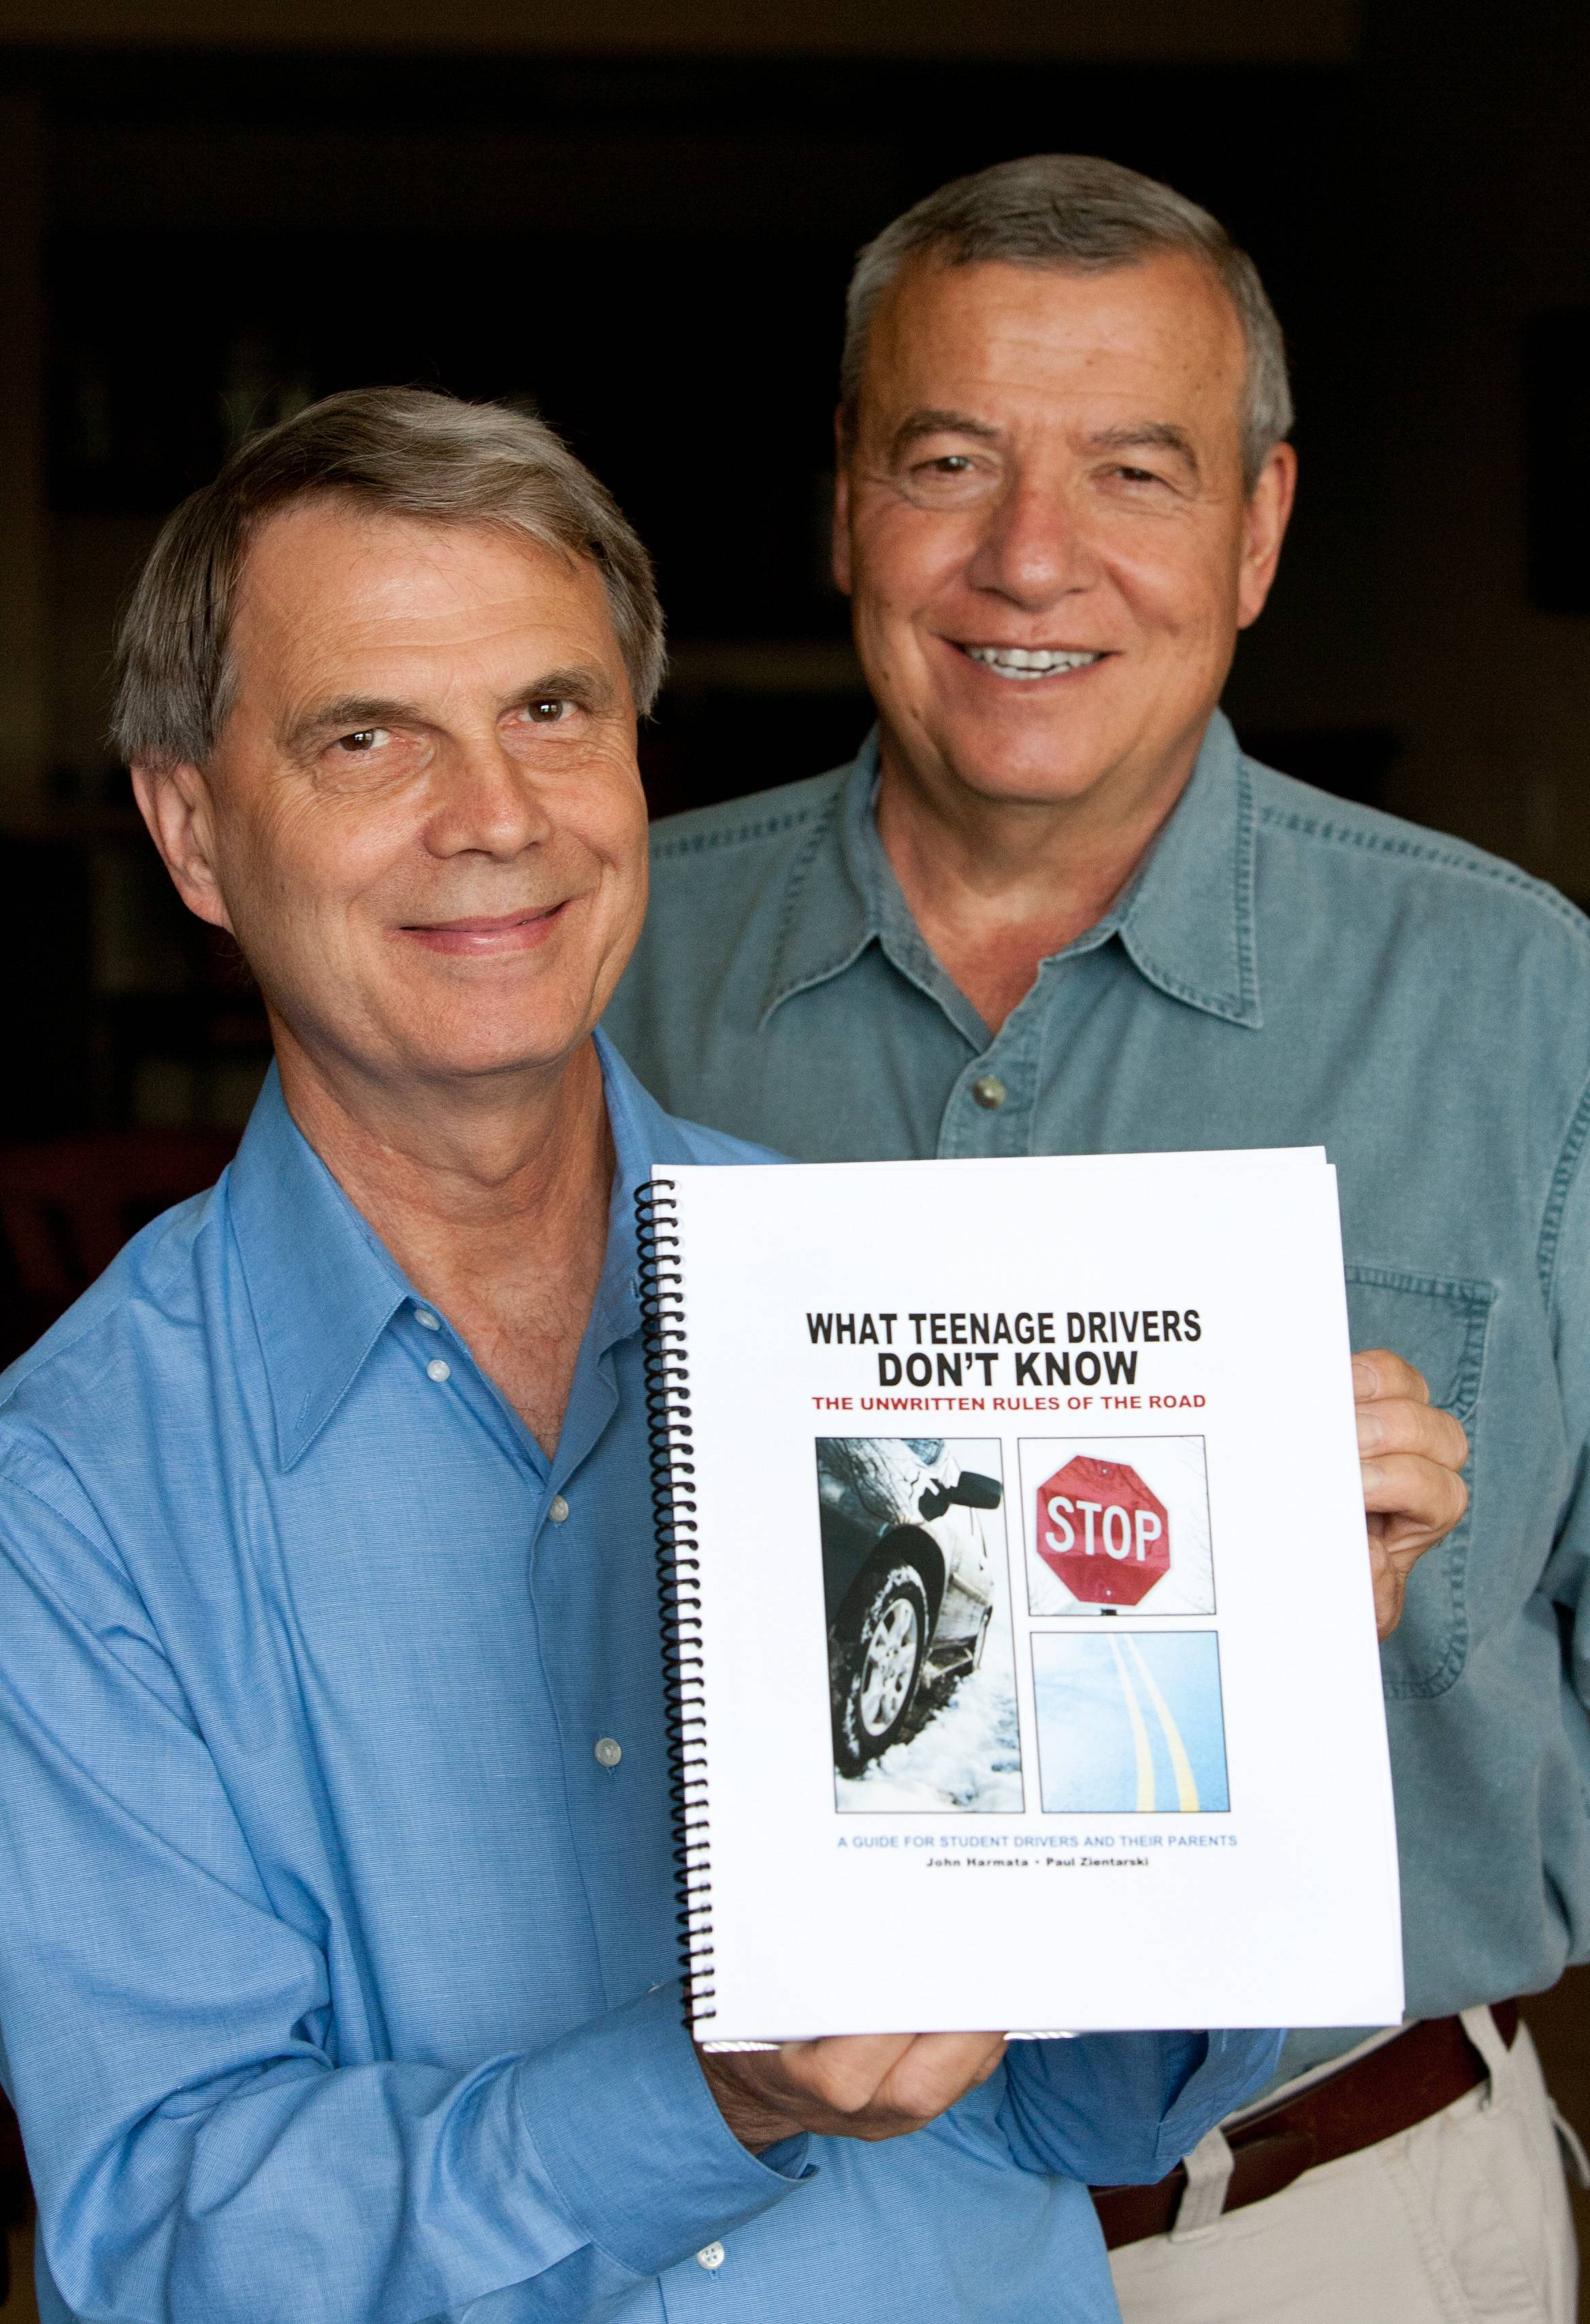 "Naperville authors John Harmata and Paul Zientarski say their book ""What Teenage Drivers Don't Know: The Unwritten Rules of the Road"" will be used by driver's education classes at Naperville Central, Naperville North and Neuqua Valley high schools once it is published in late September."